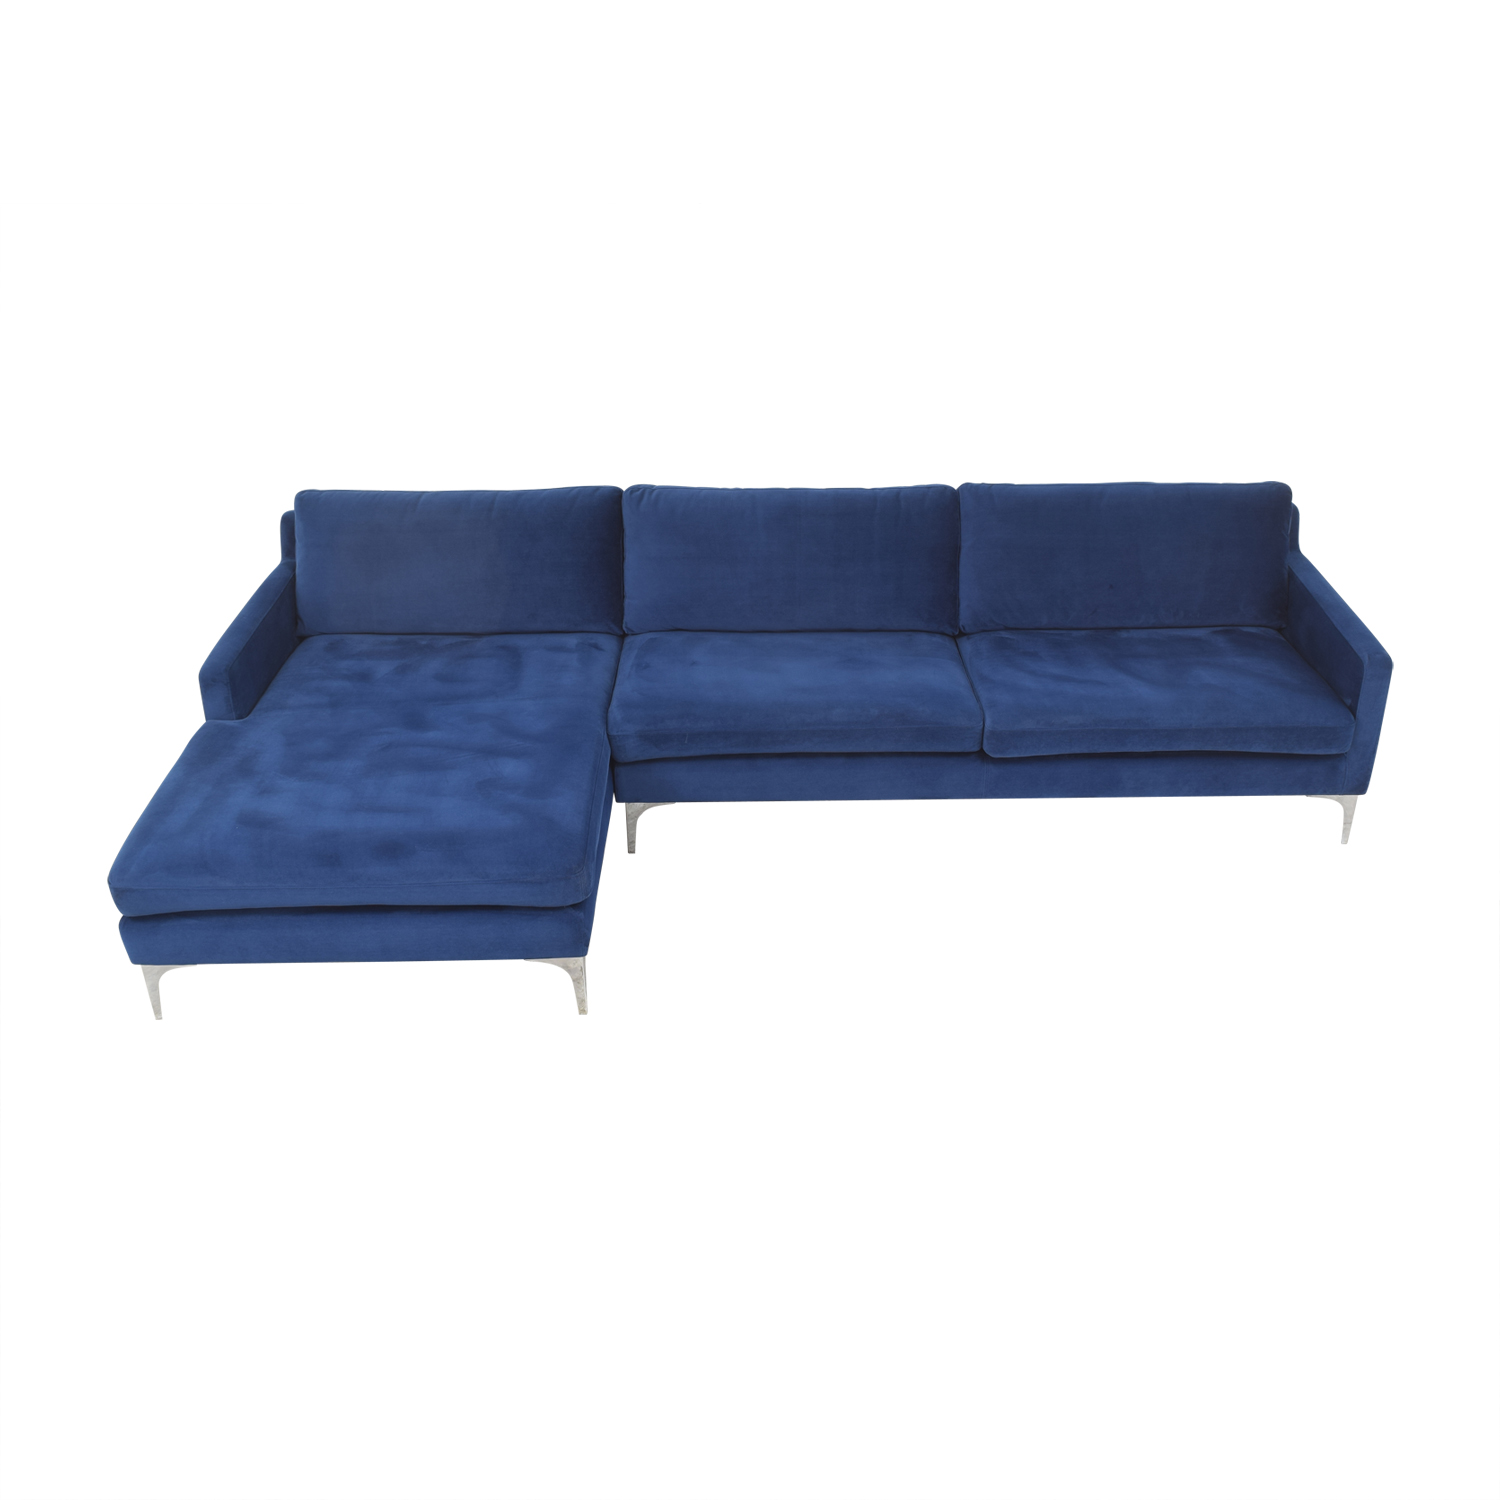 Joss & Main Joss & Main Bridgehampton Chaise Sectional Sofa on sale